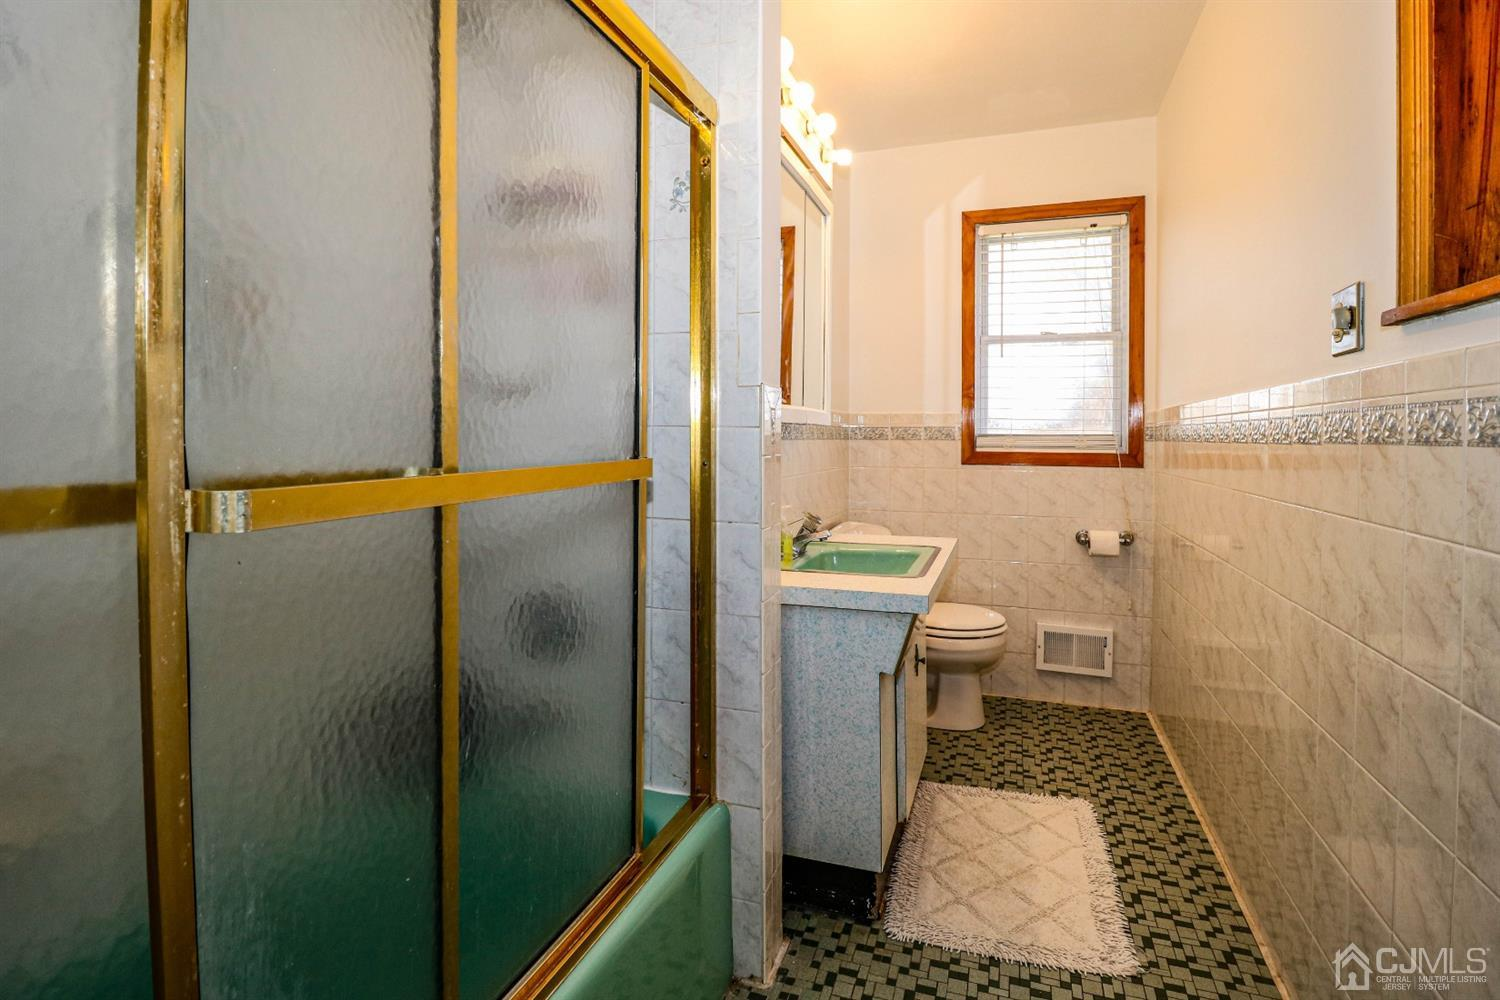 The main bath has tub/shower combination with shower doors, vanity sink and newer commode.